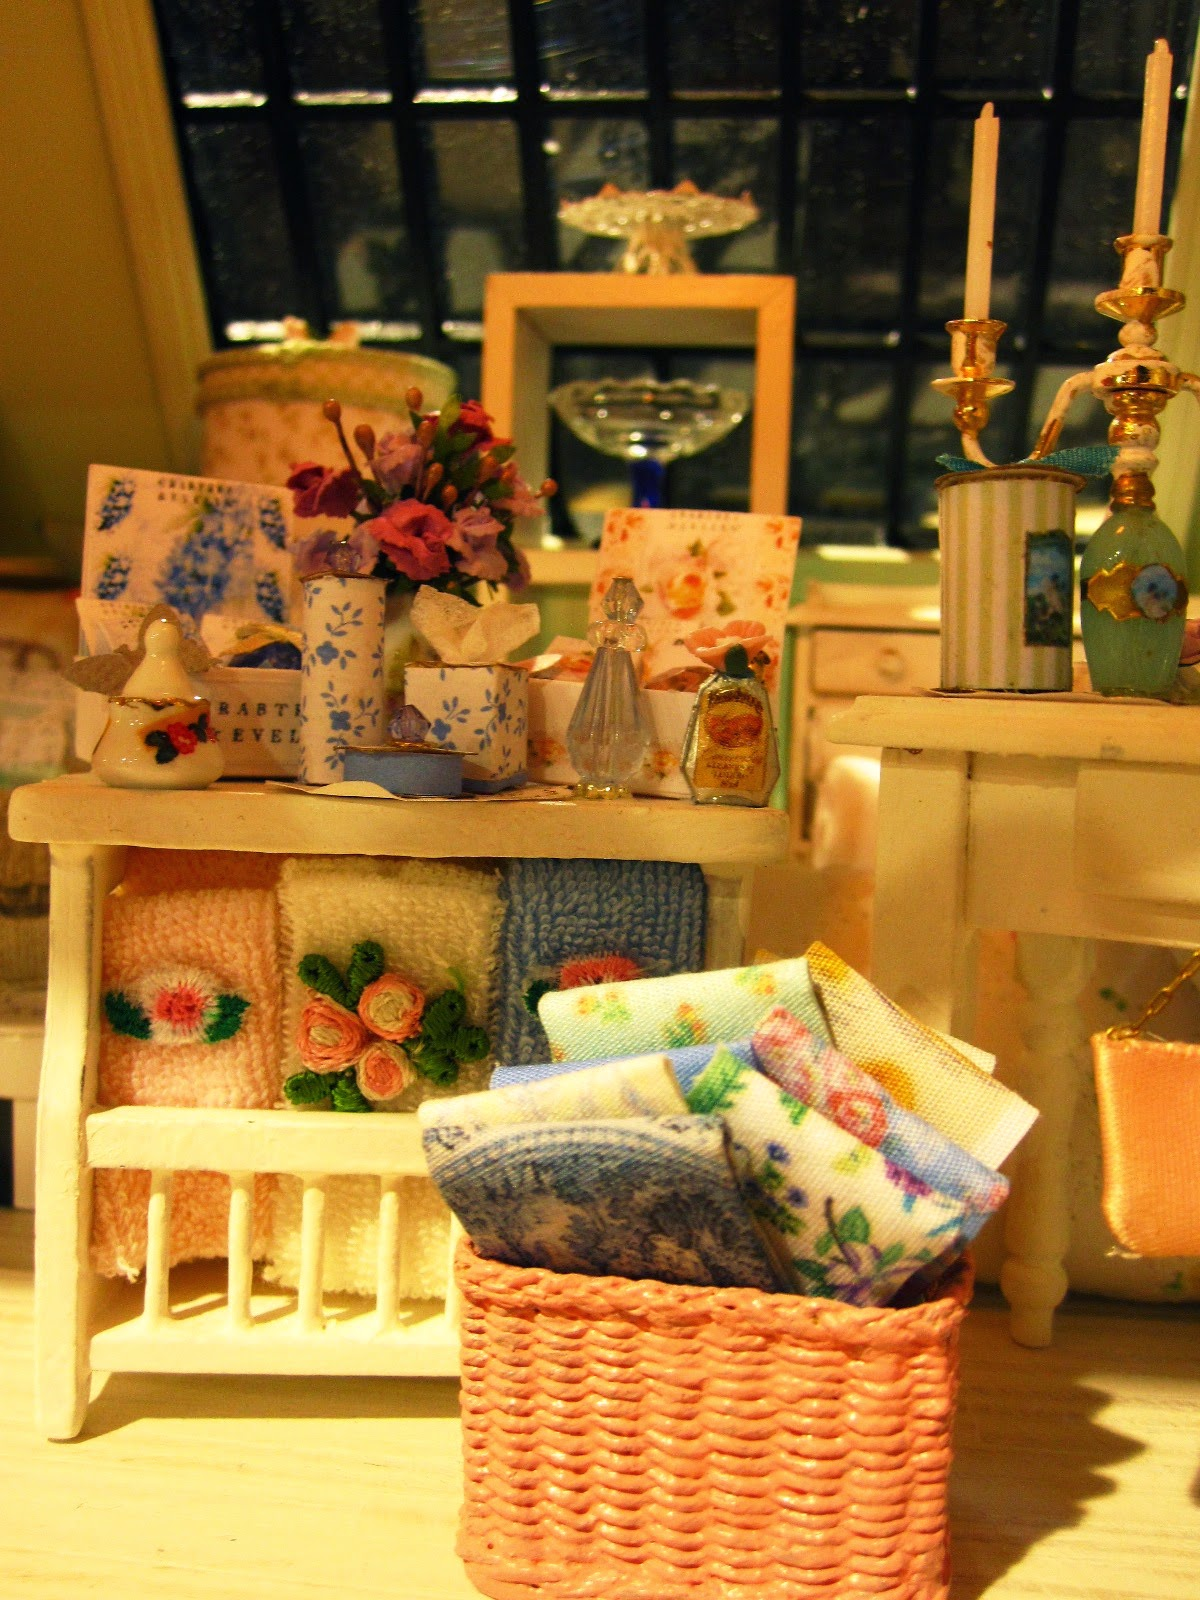 Modern miniature shabby chic shop display of sheets towels, cake stands and toiletries on cream shelves.